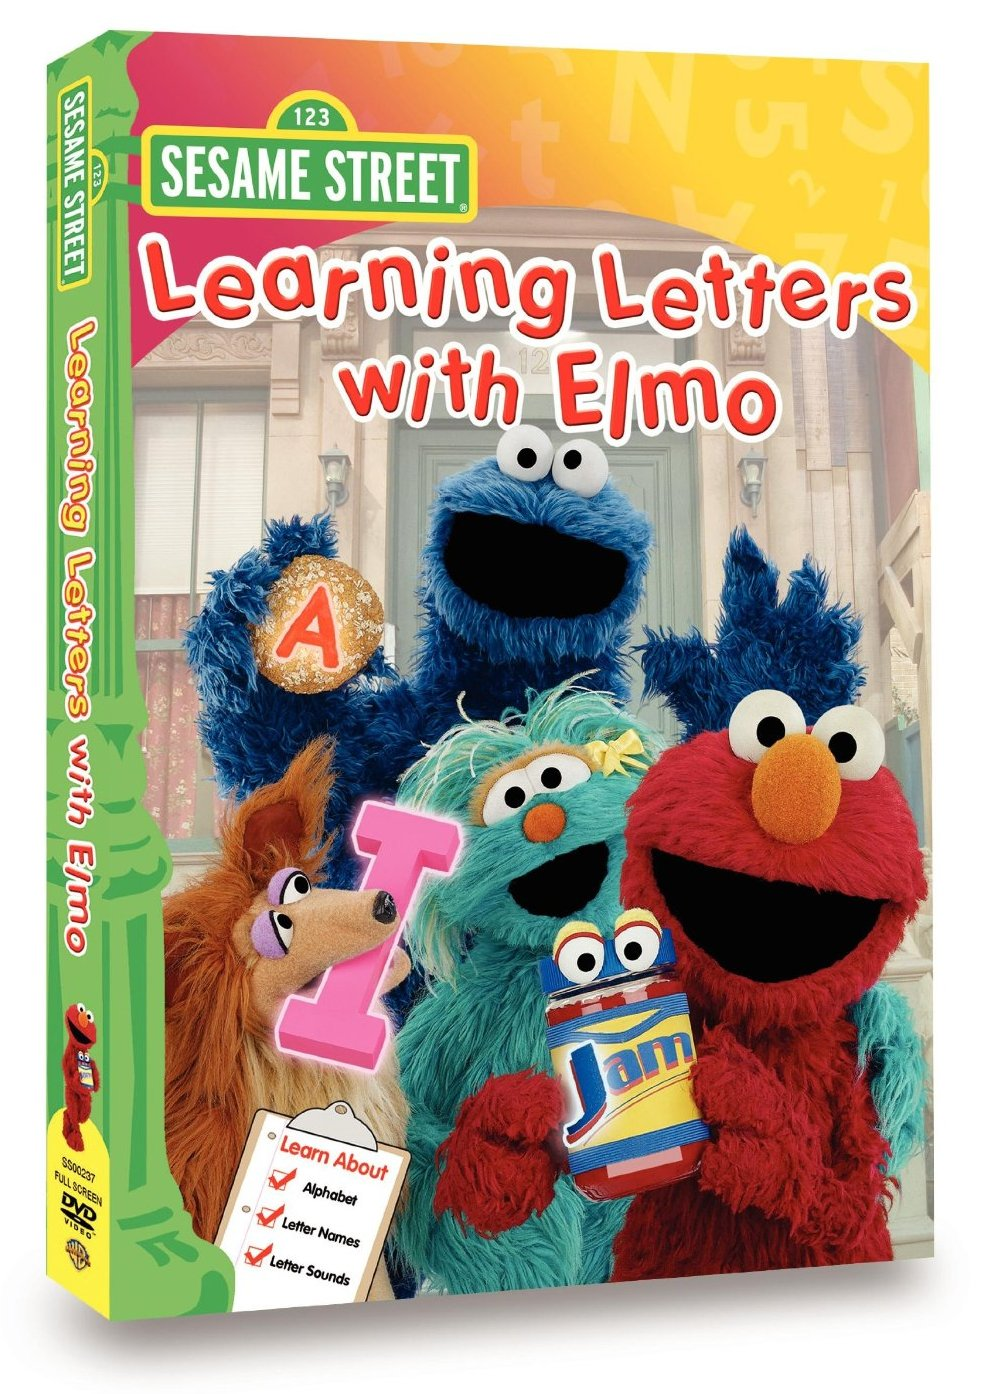 sesame street letter s learning letters with elmo muppet wiki fandom powered 24814 | latest?cb=20110530211344